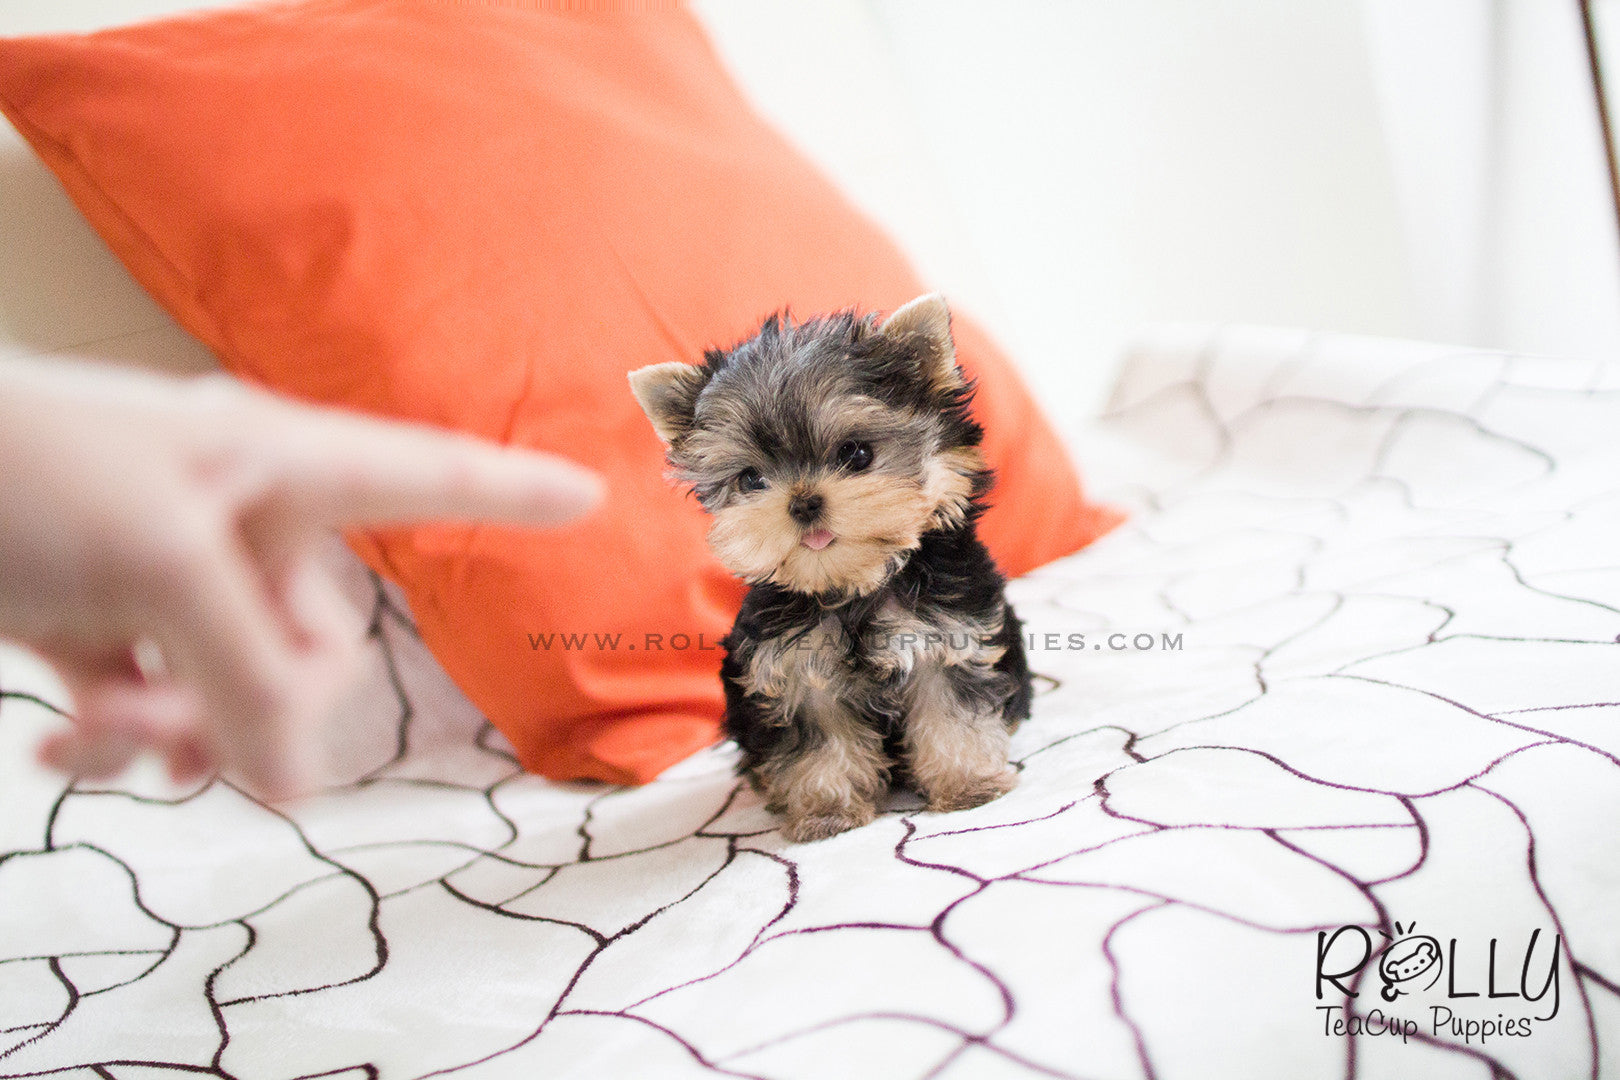 Carter - Yorkie  M– Rolly Teacup Puppies